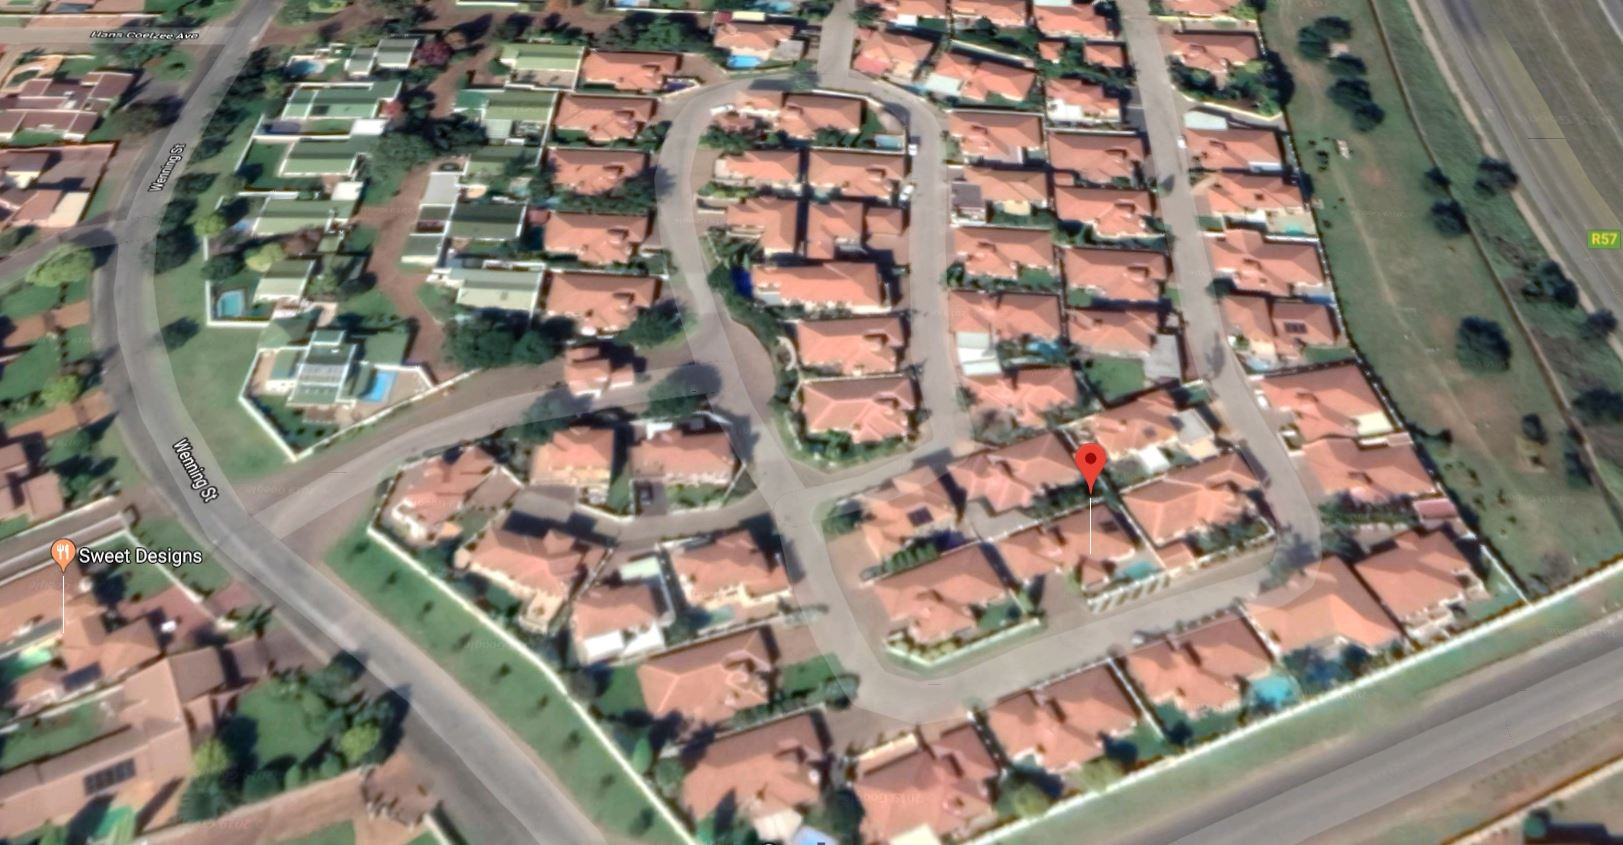 Aerial view of location of house in the Estate